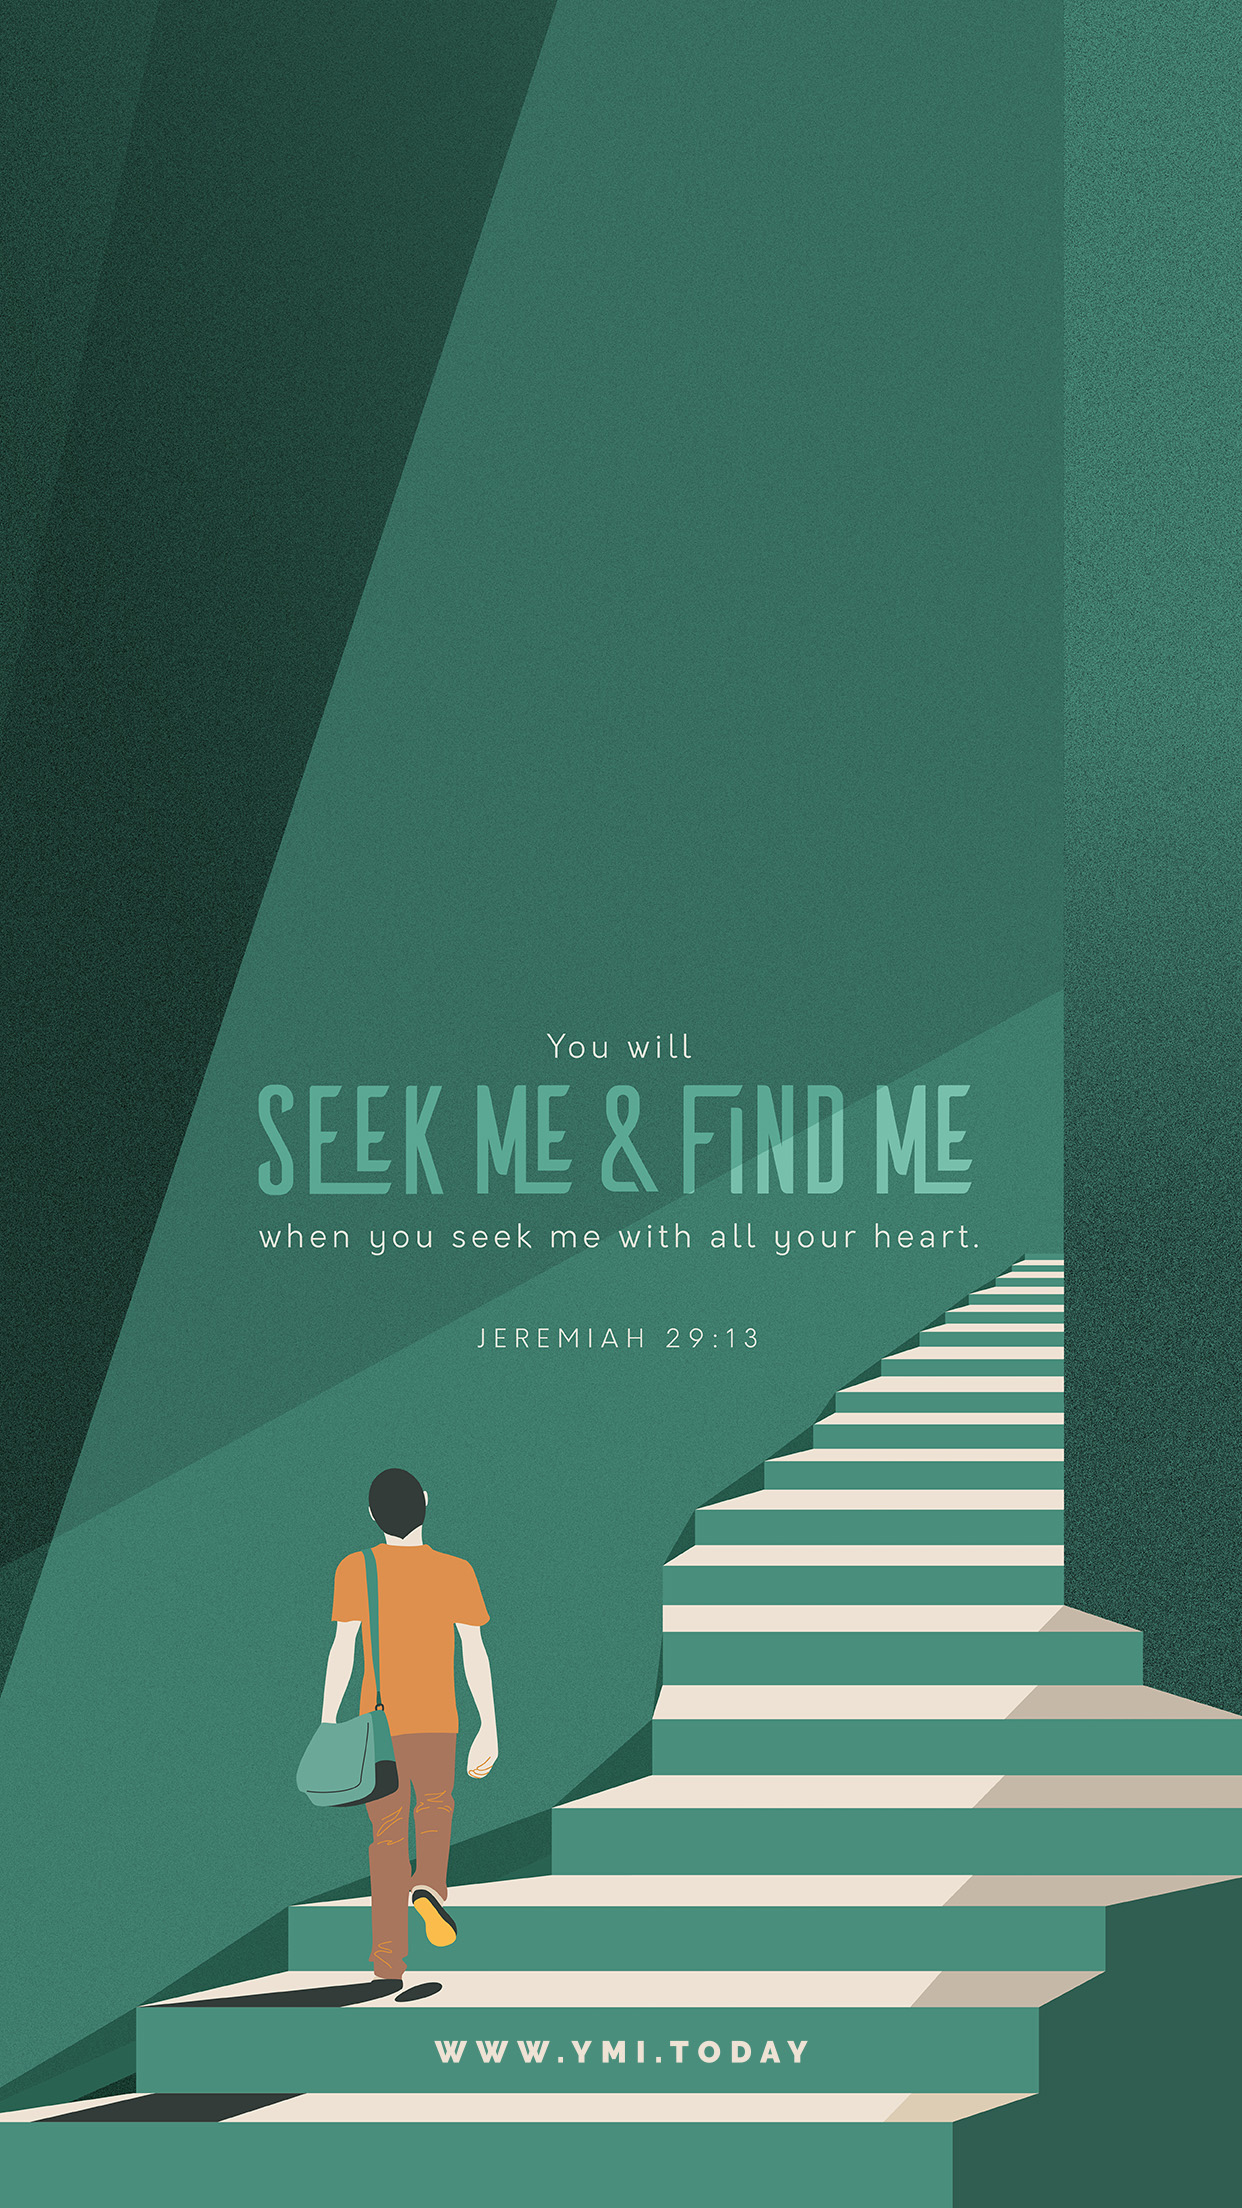 YMI March 2019 Phone Lockscreen - You will seek Me and find Me when you seek Me with all your heart. - Jeremiah 29:13